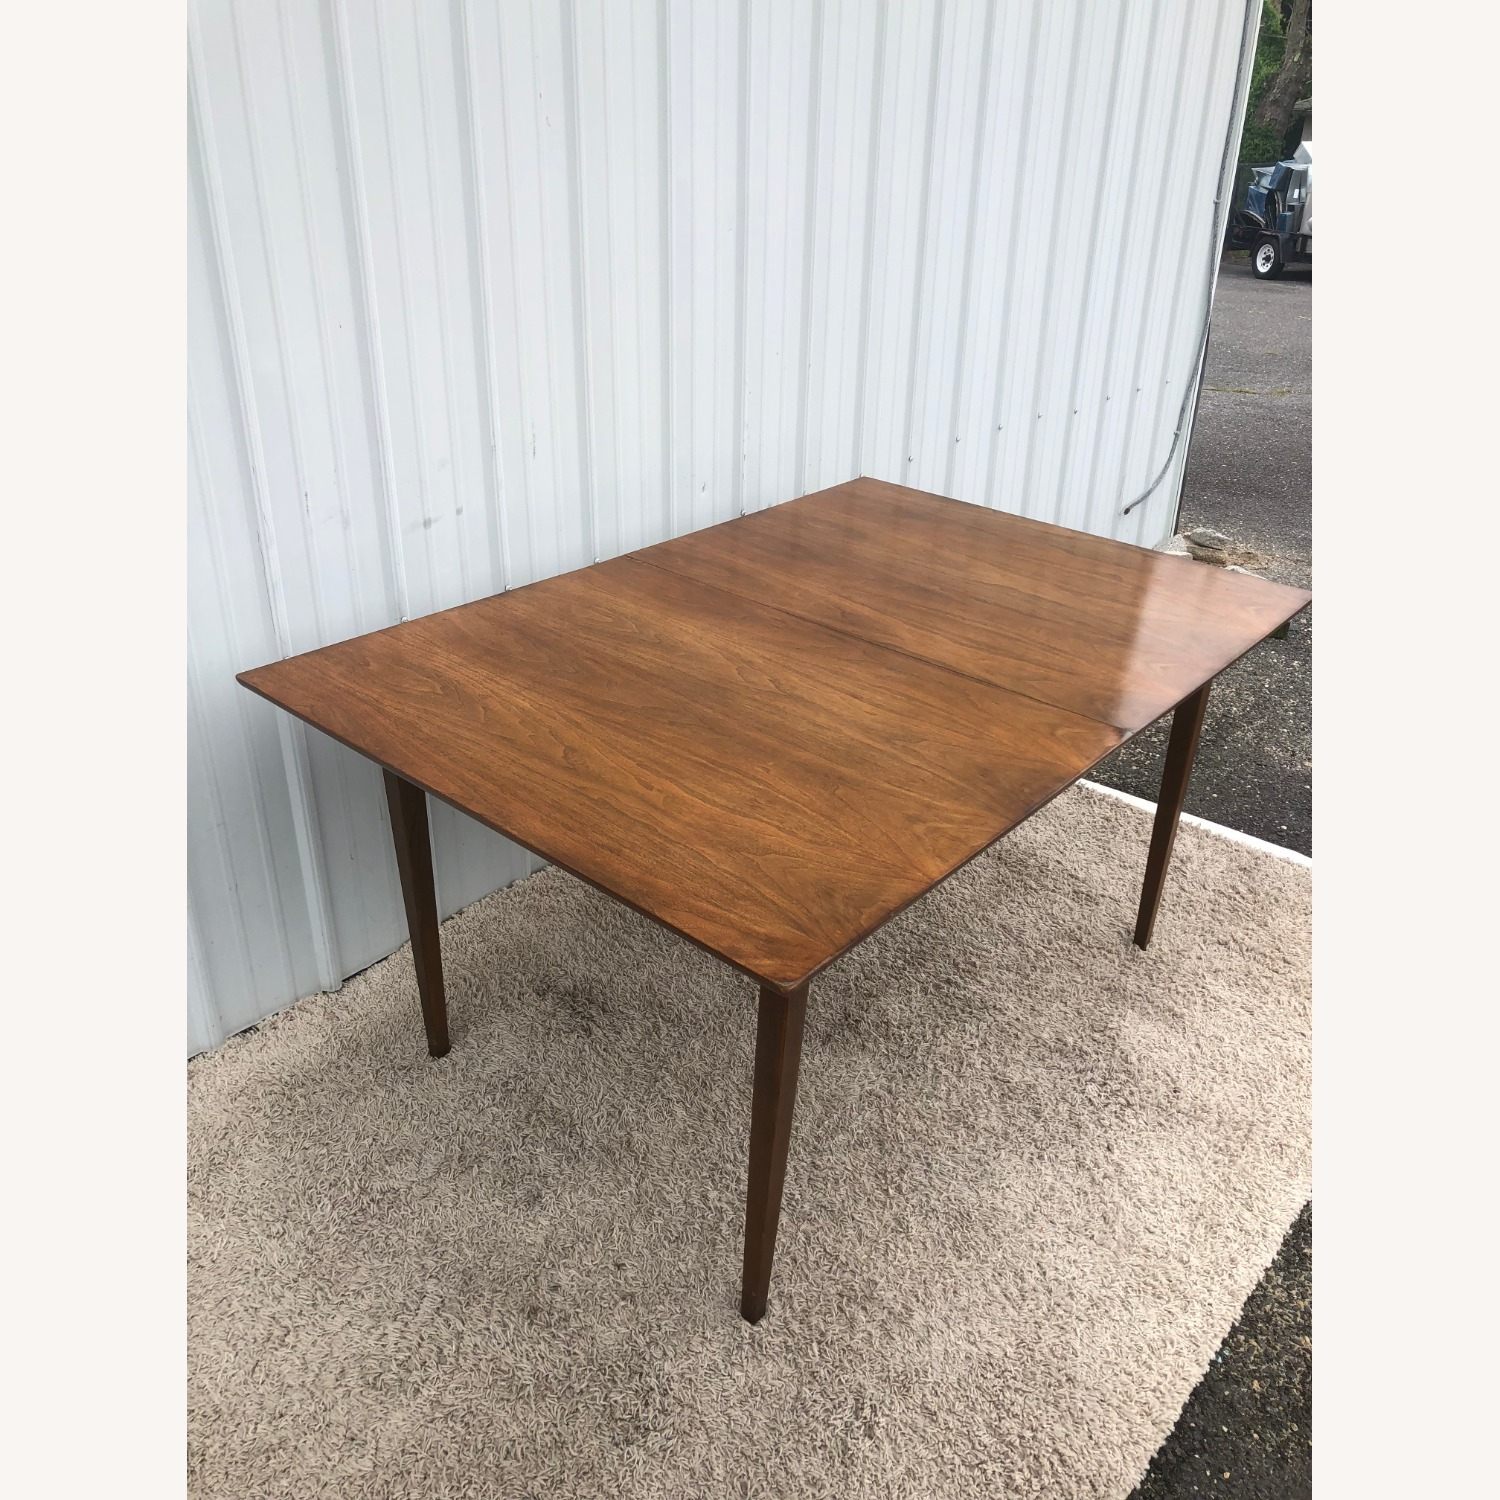 Mid Century Walnut Dining Table with 2 Leafs - image-8